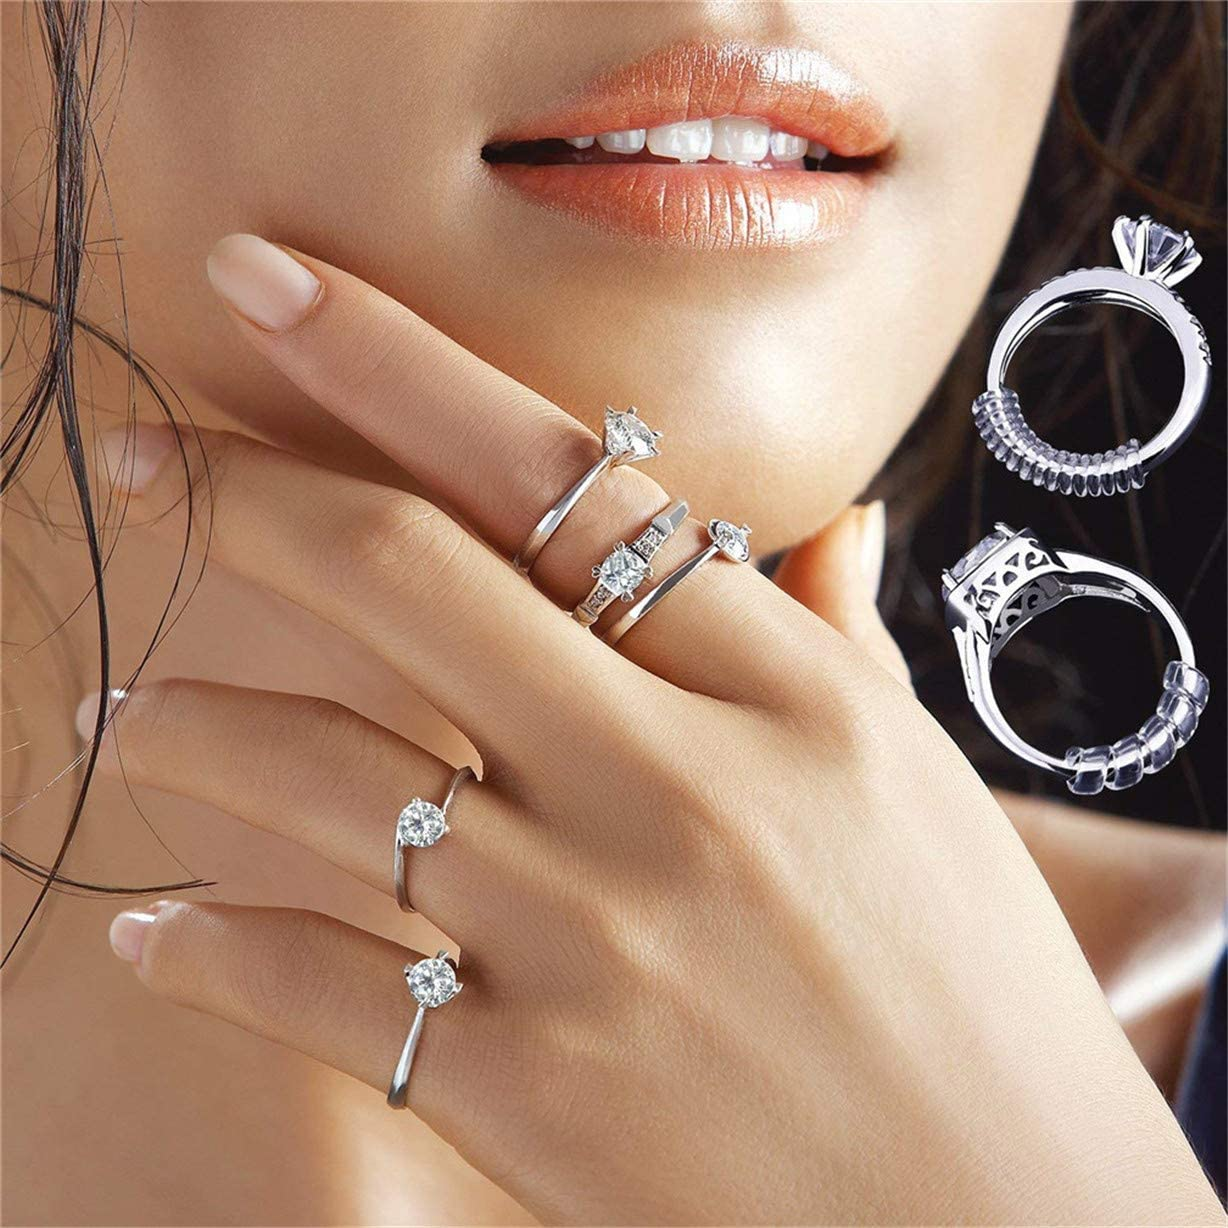 Fitter for Women Loose Rings Invisible Silicone Ring Guard Clip Jewelry Tightener Resizer Ring Size Adjuster for Loose Rings Fit Almost Any Ring 4 Sizes 8 Pack